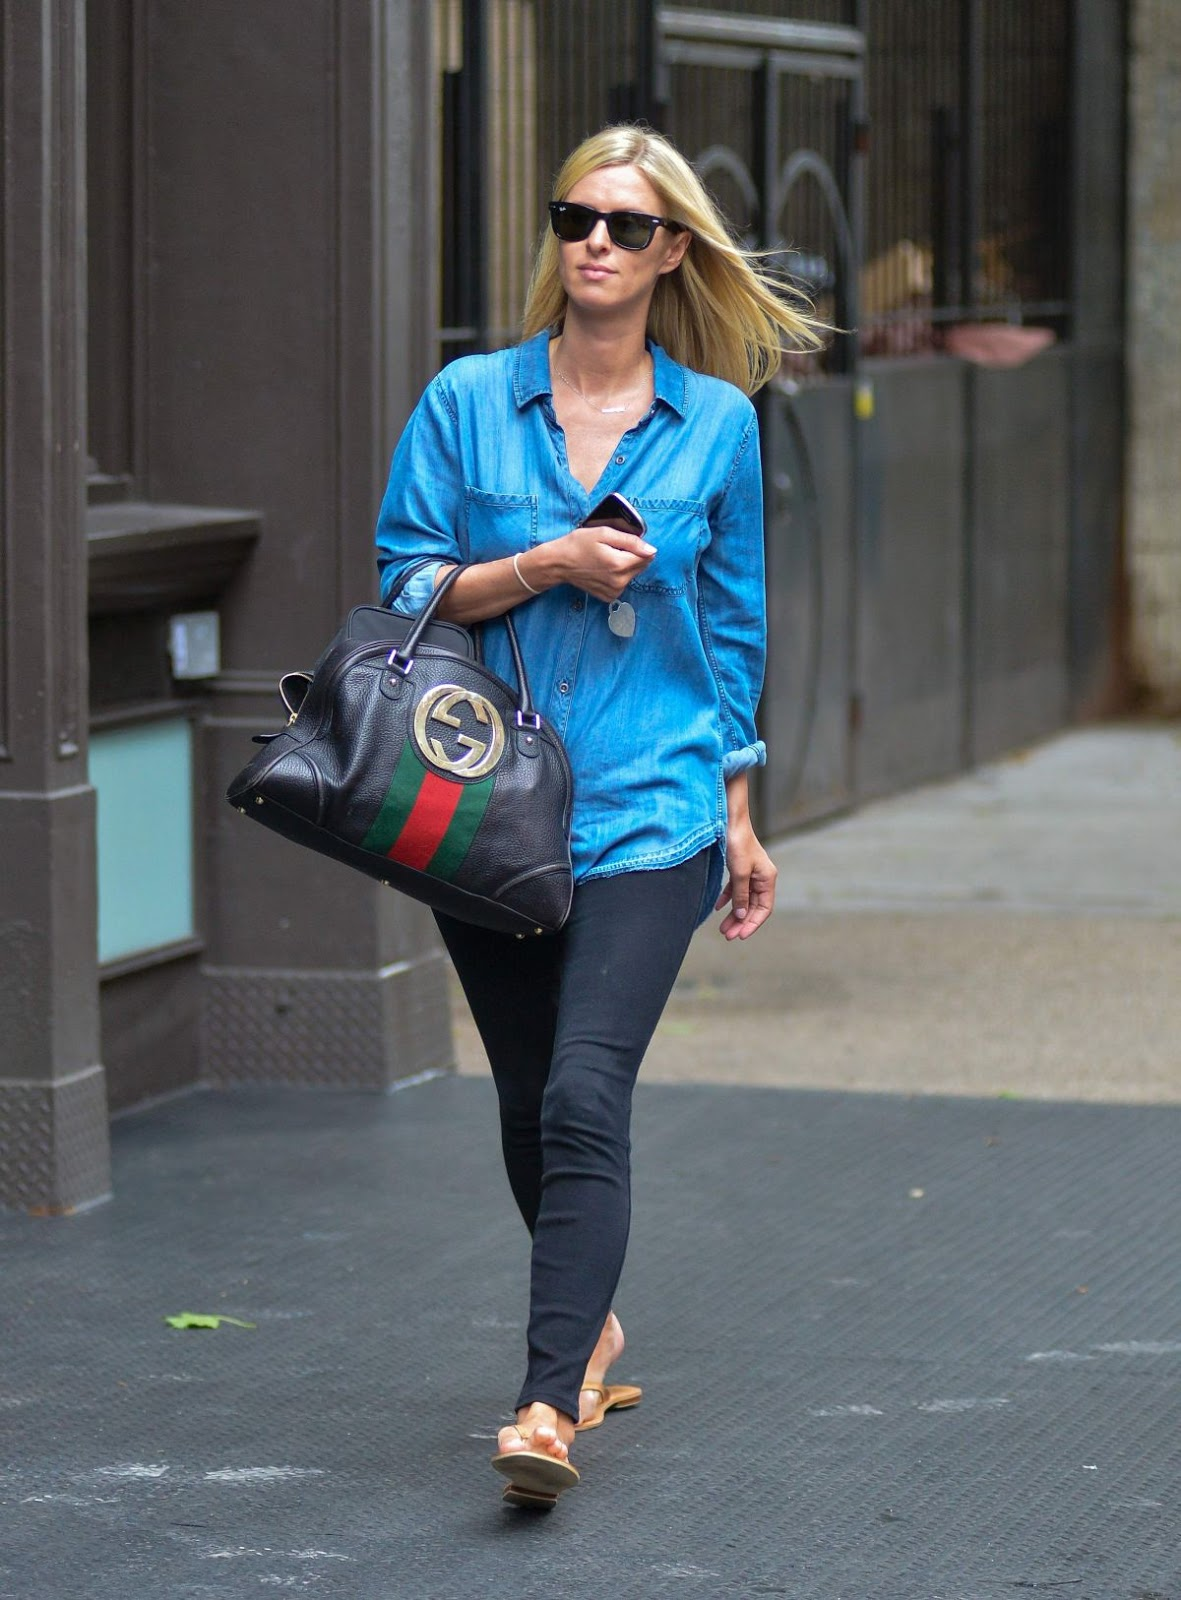 HD Photos of Nicky Hilton Out In New York